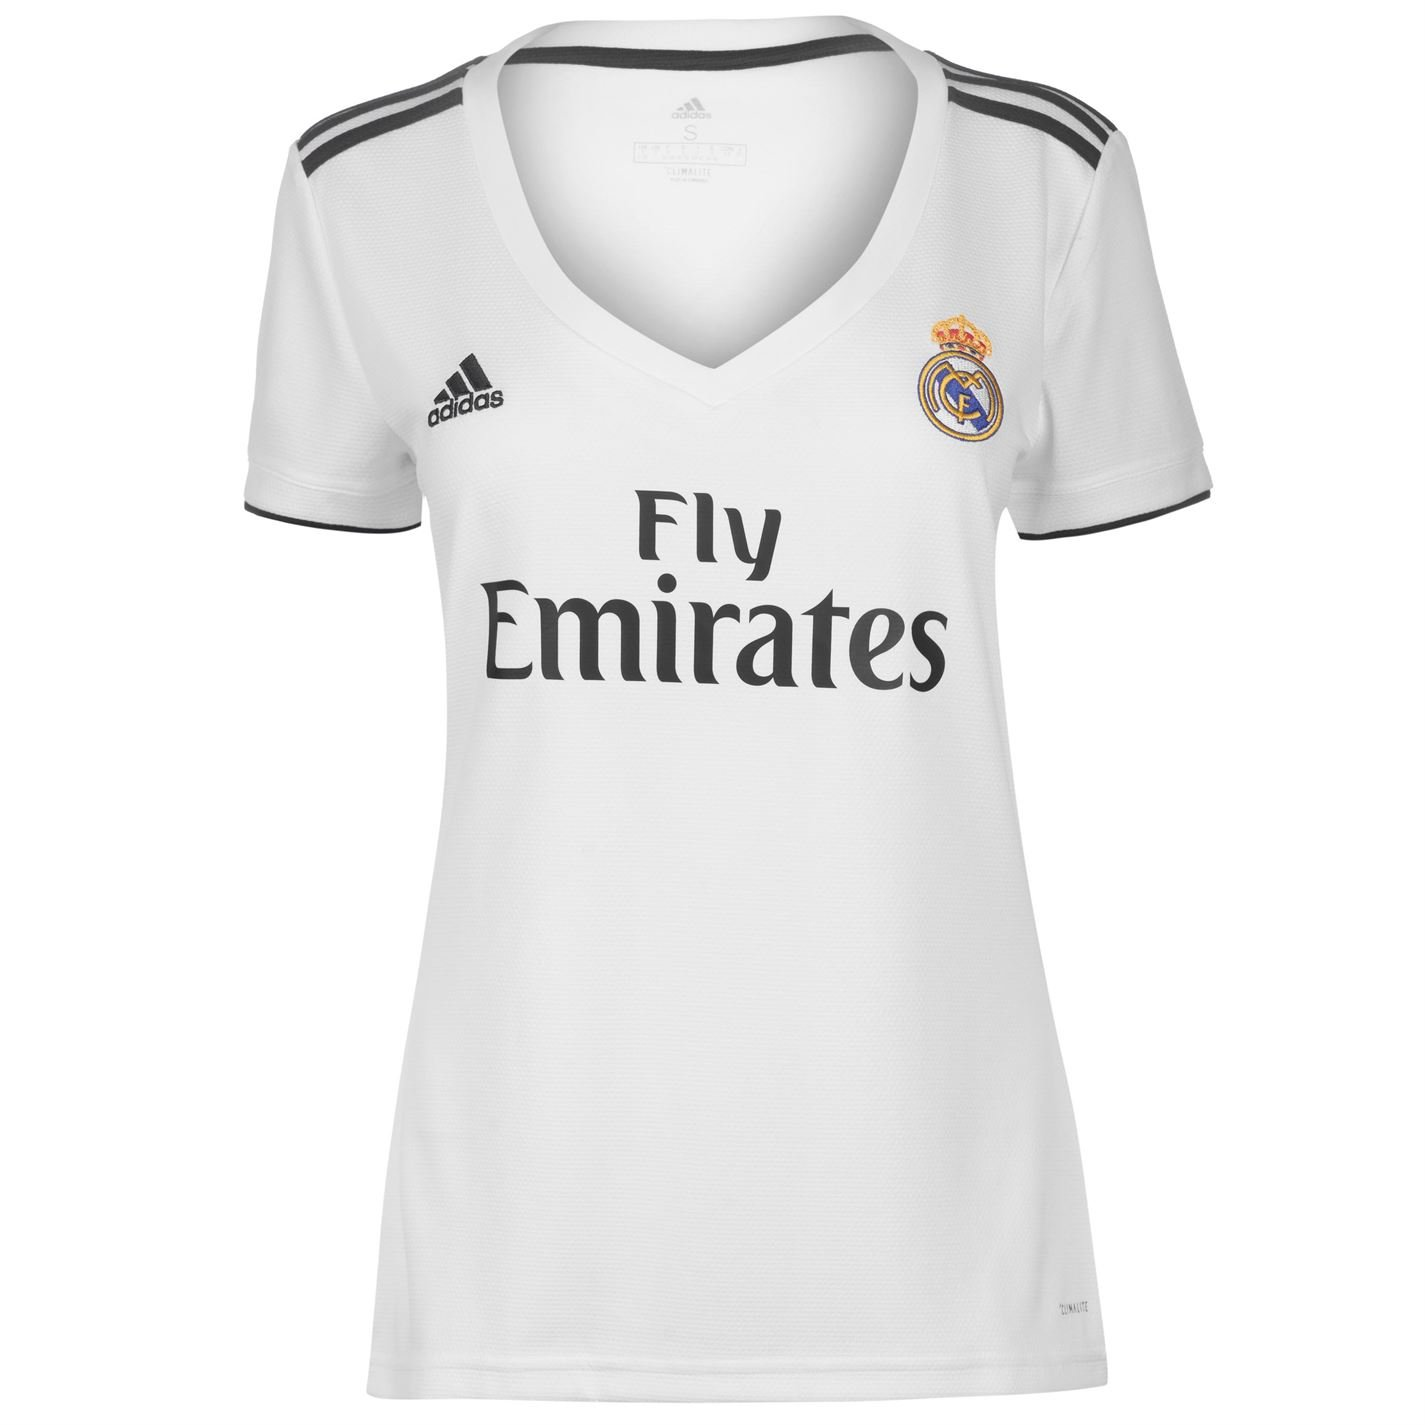 adidas 2018-2019 Real Madrid Womens Home Football Soccer T-Shirt Jersey